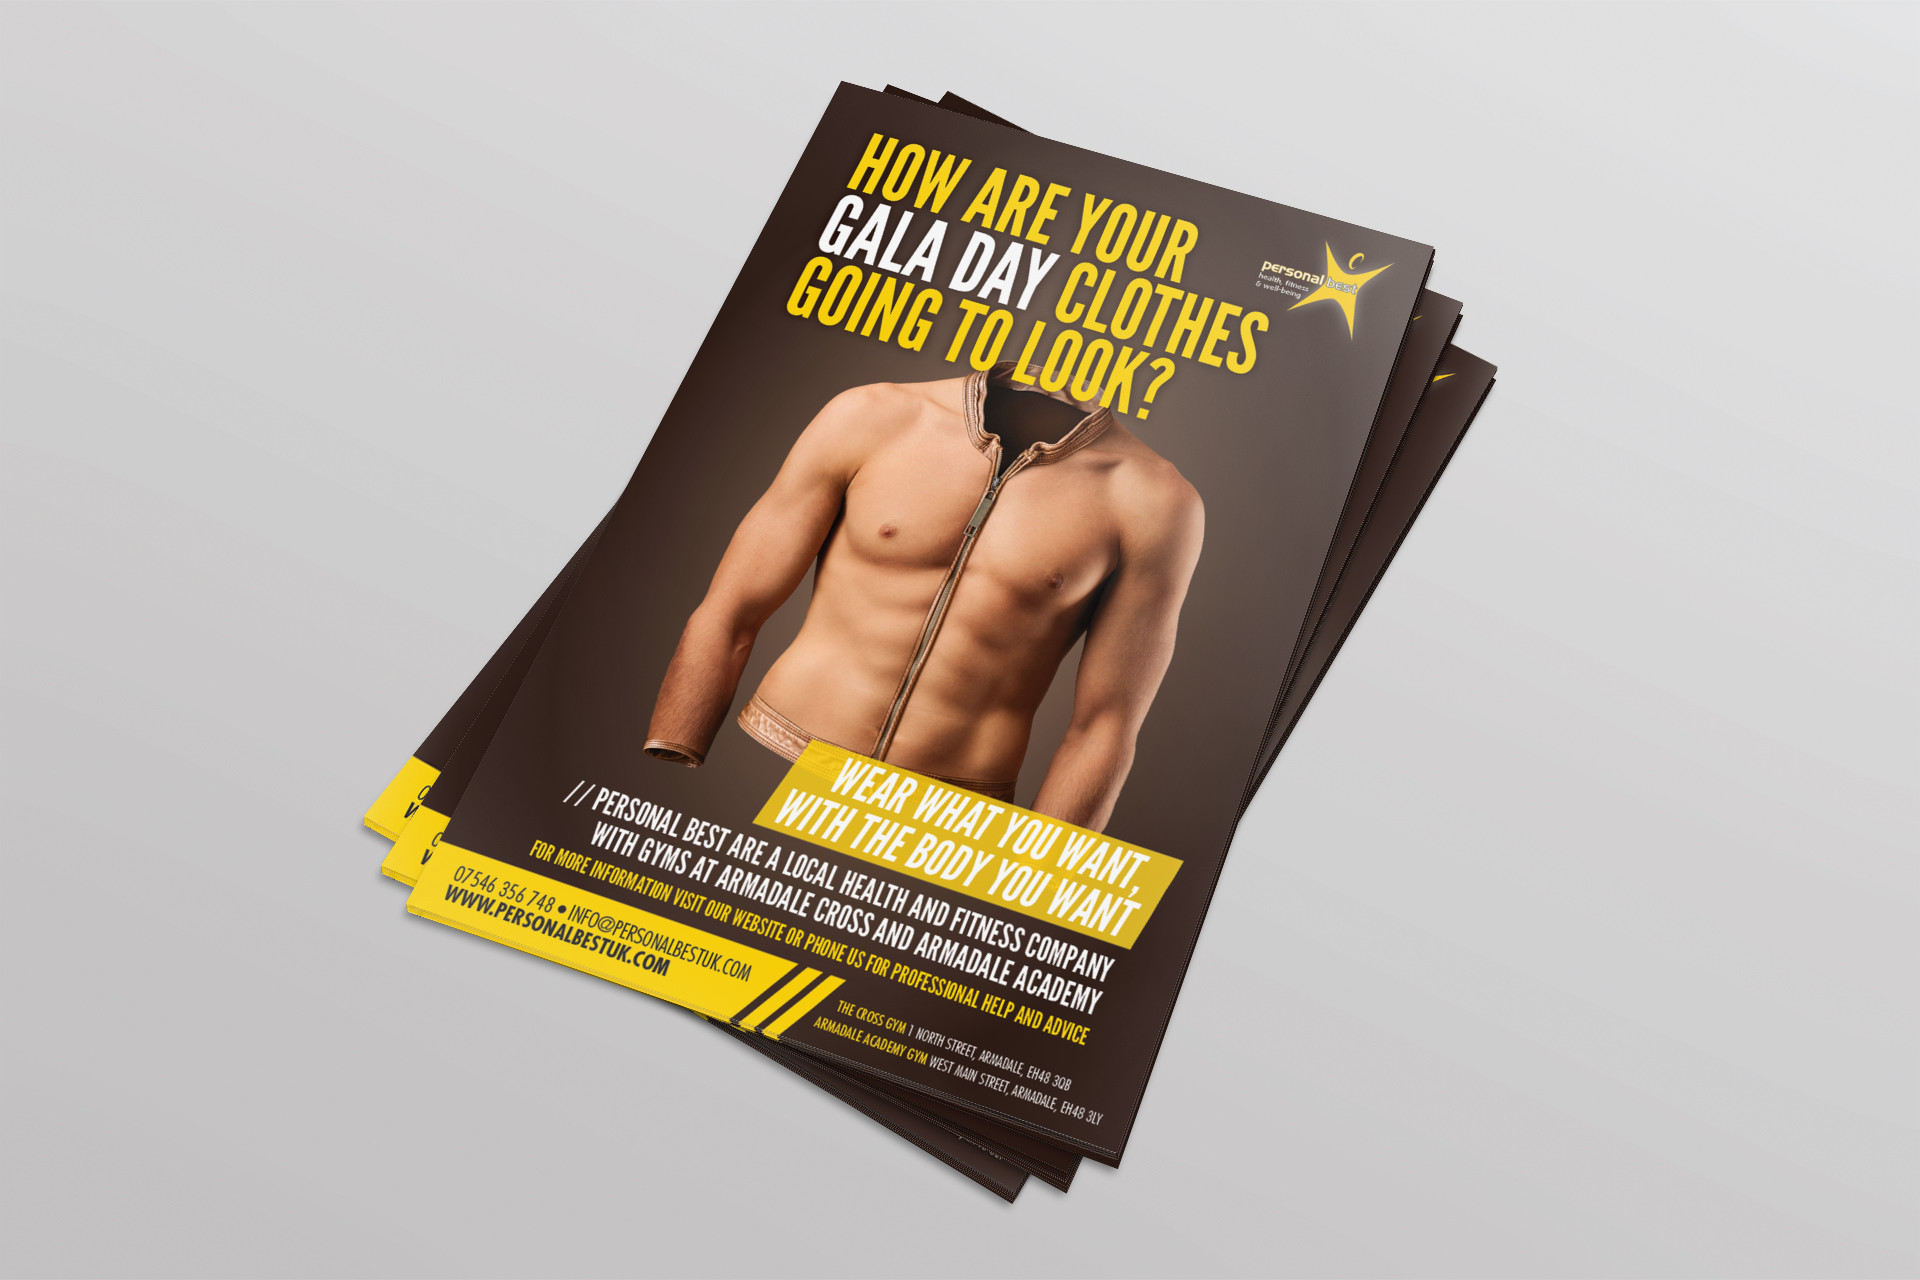 Flyer-design-Glasgow-Edinburgh-West-Lothian-07.jpg